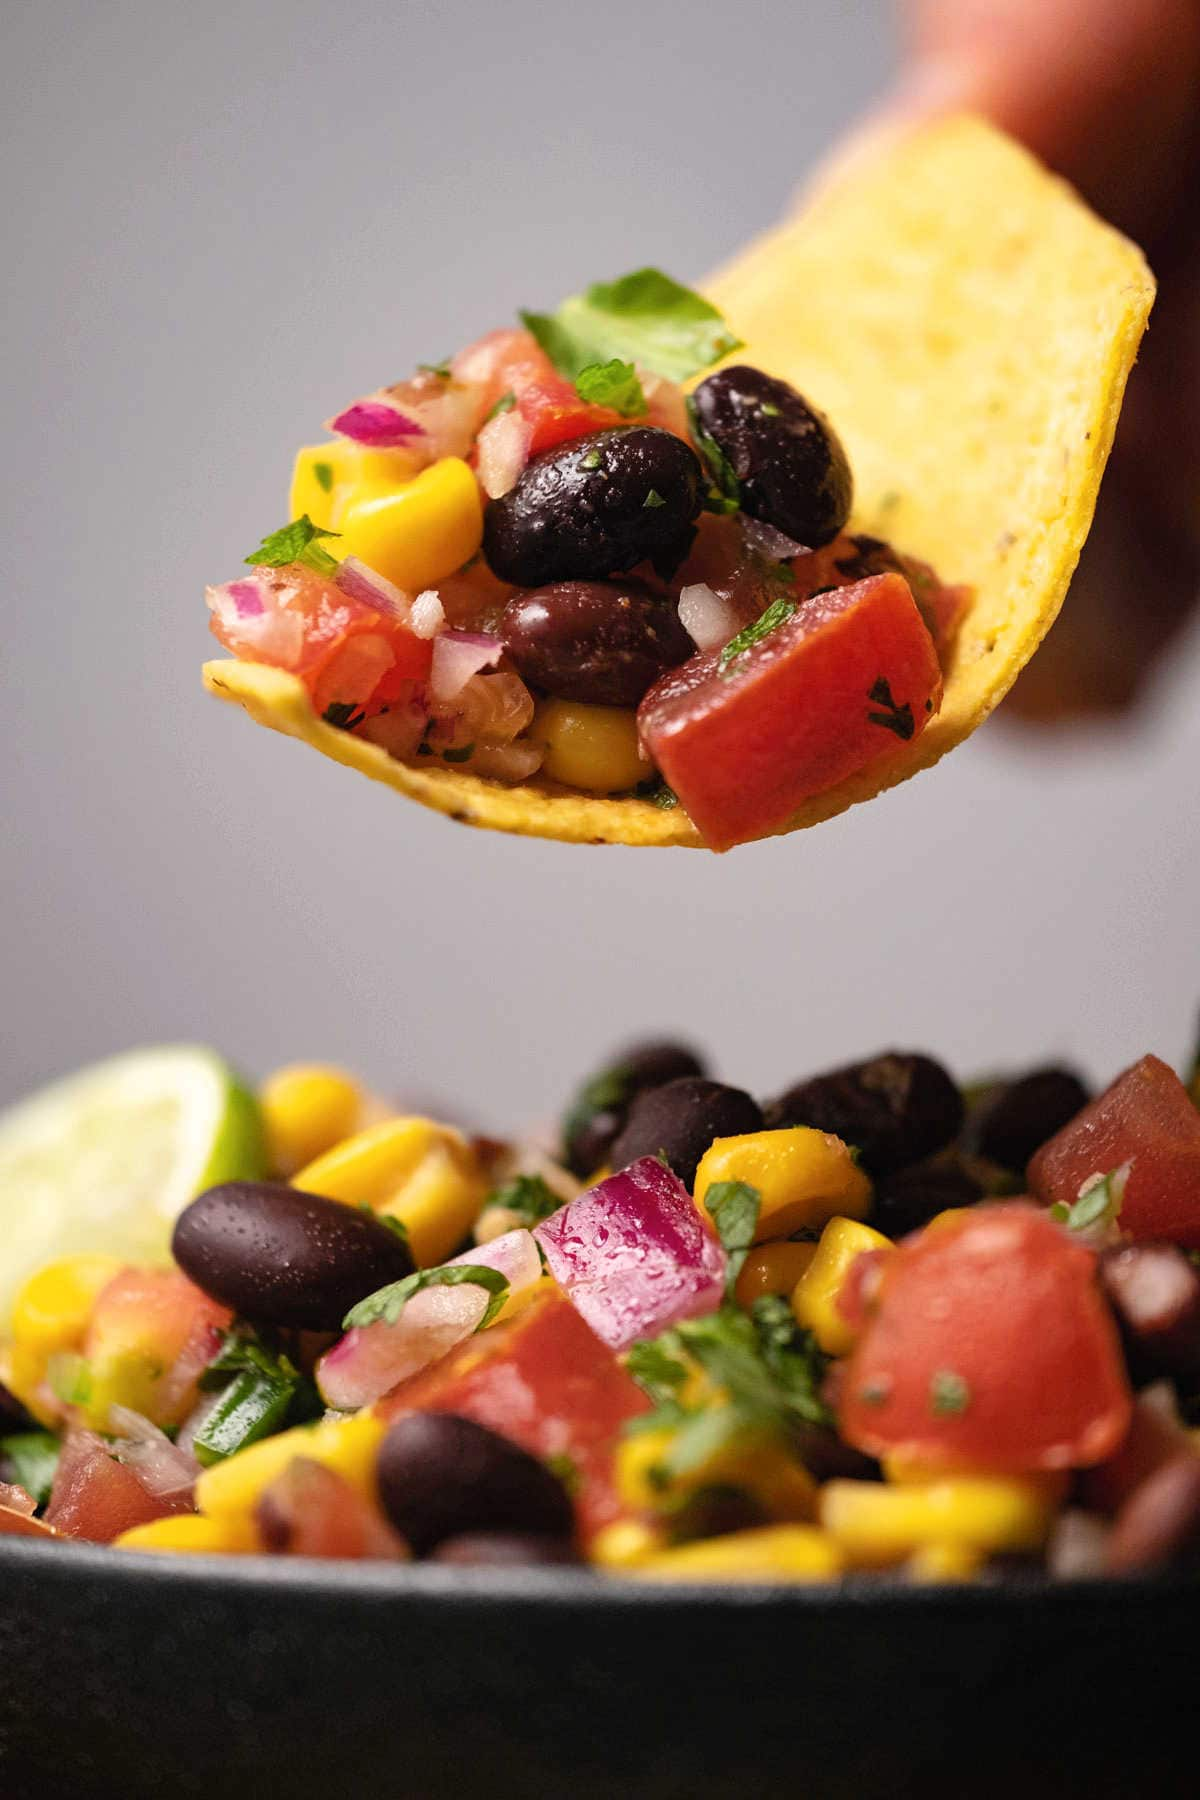 Corn chip scooping up a serving of black bean salsa.